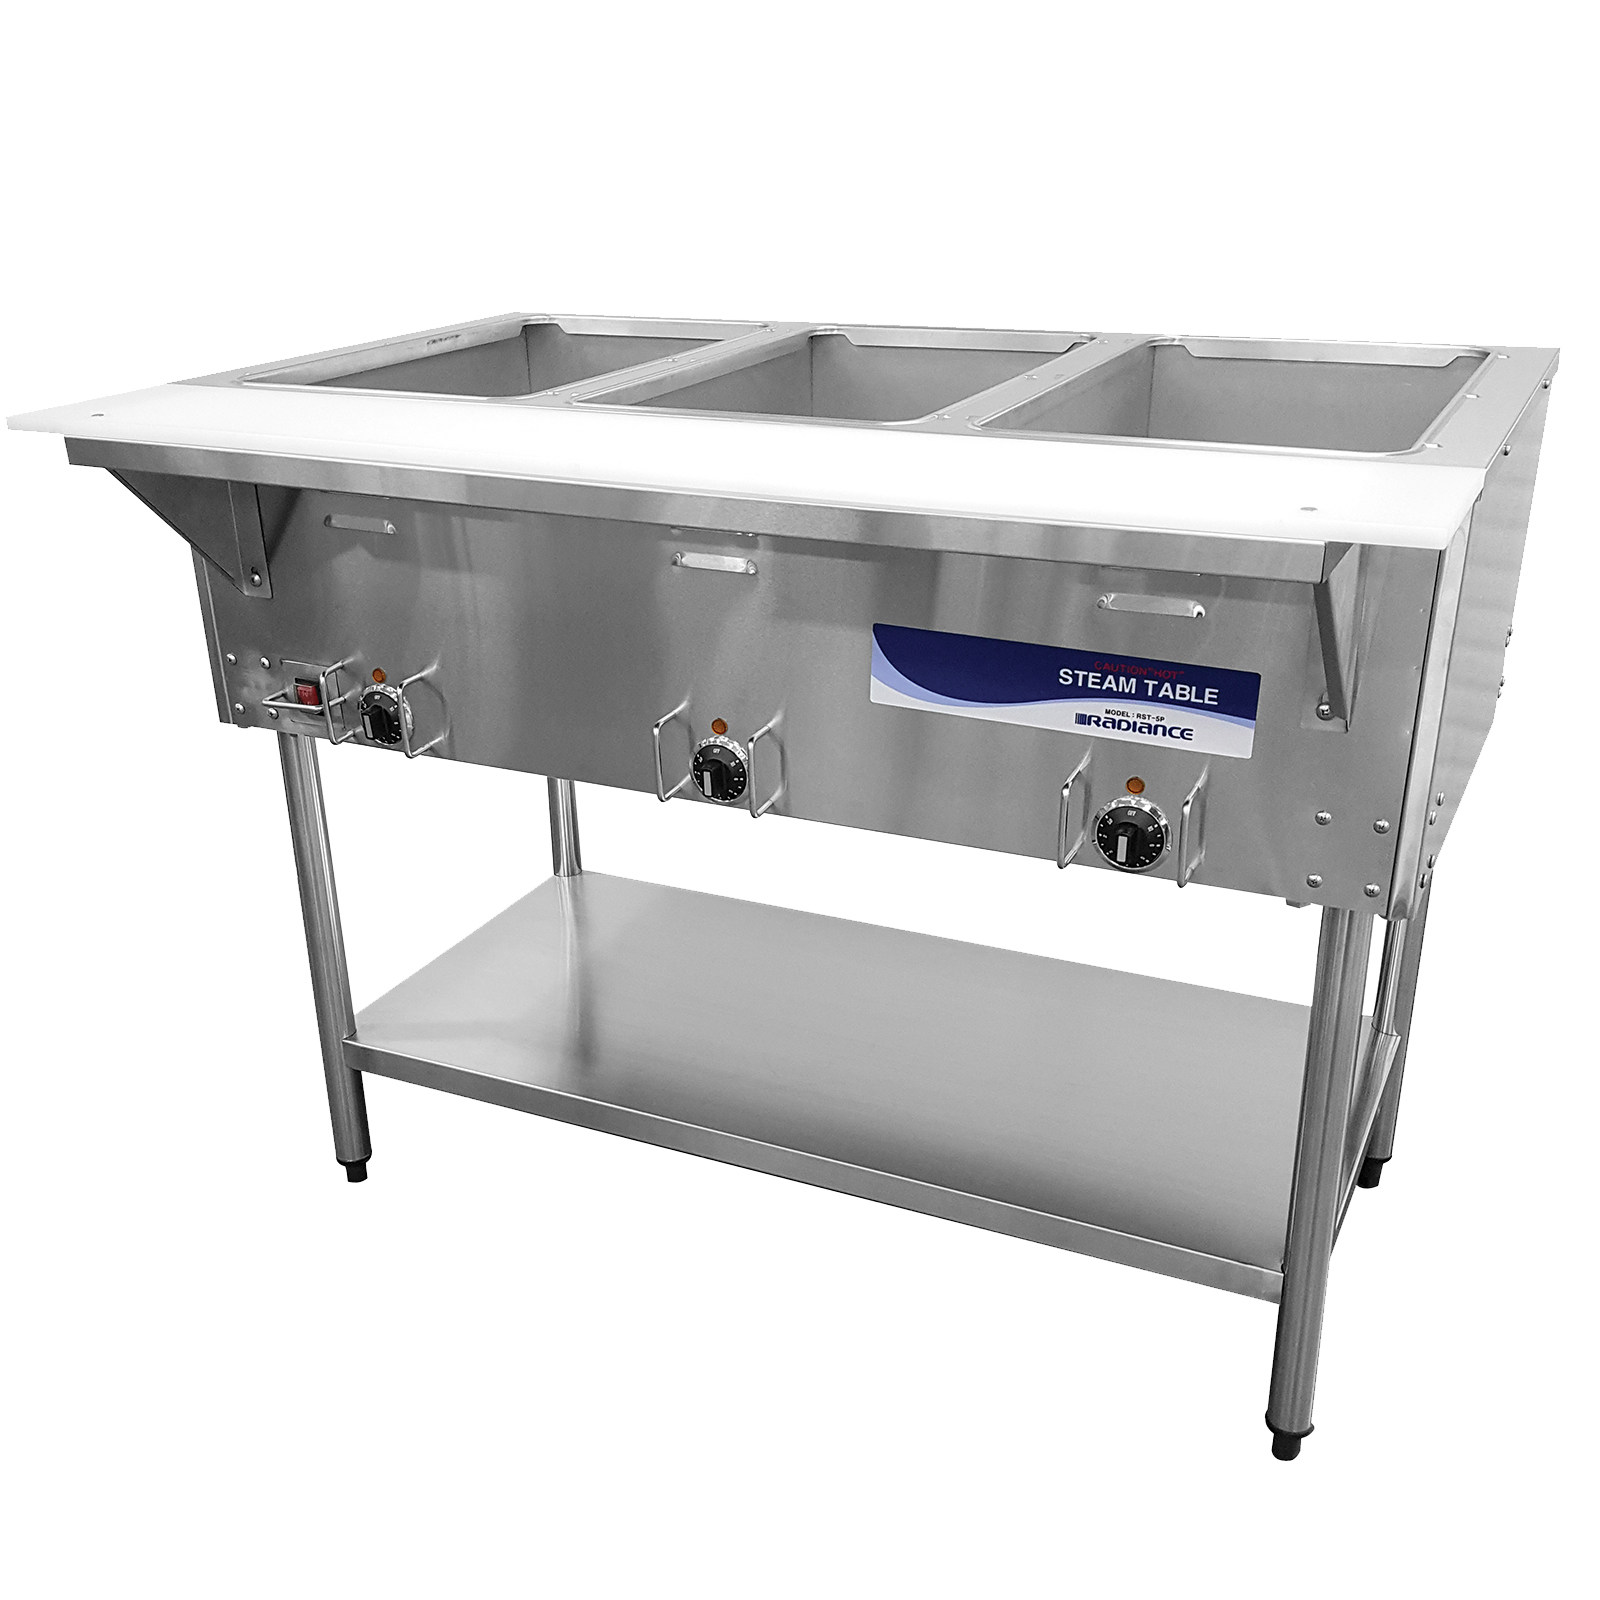 Turbo Air RST-3P / RST-3P-240 serving counter, hot food, electric